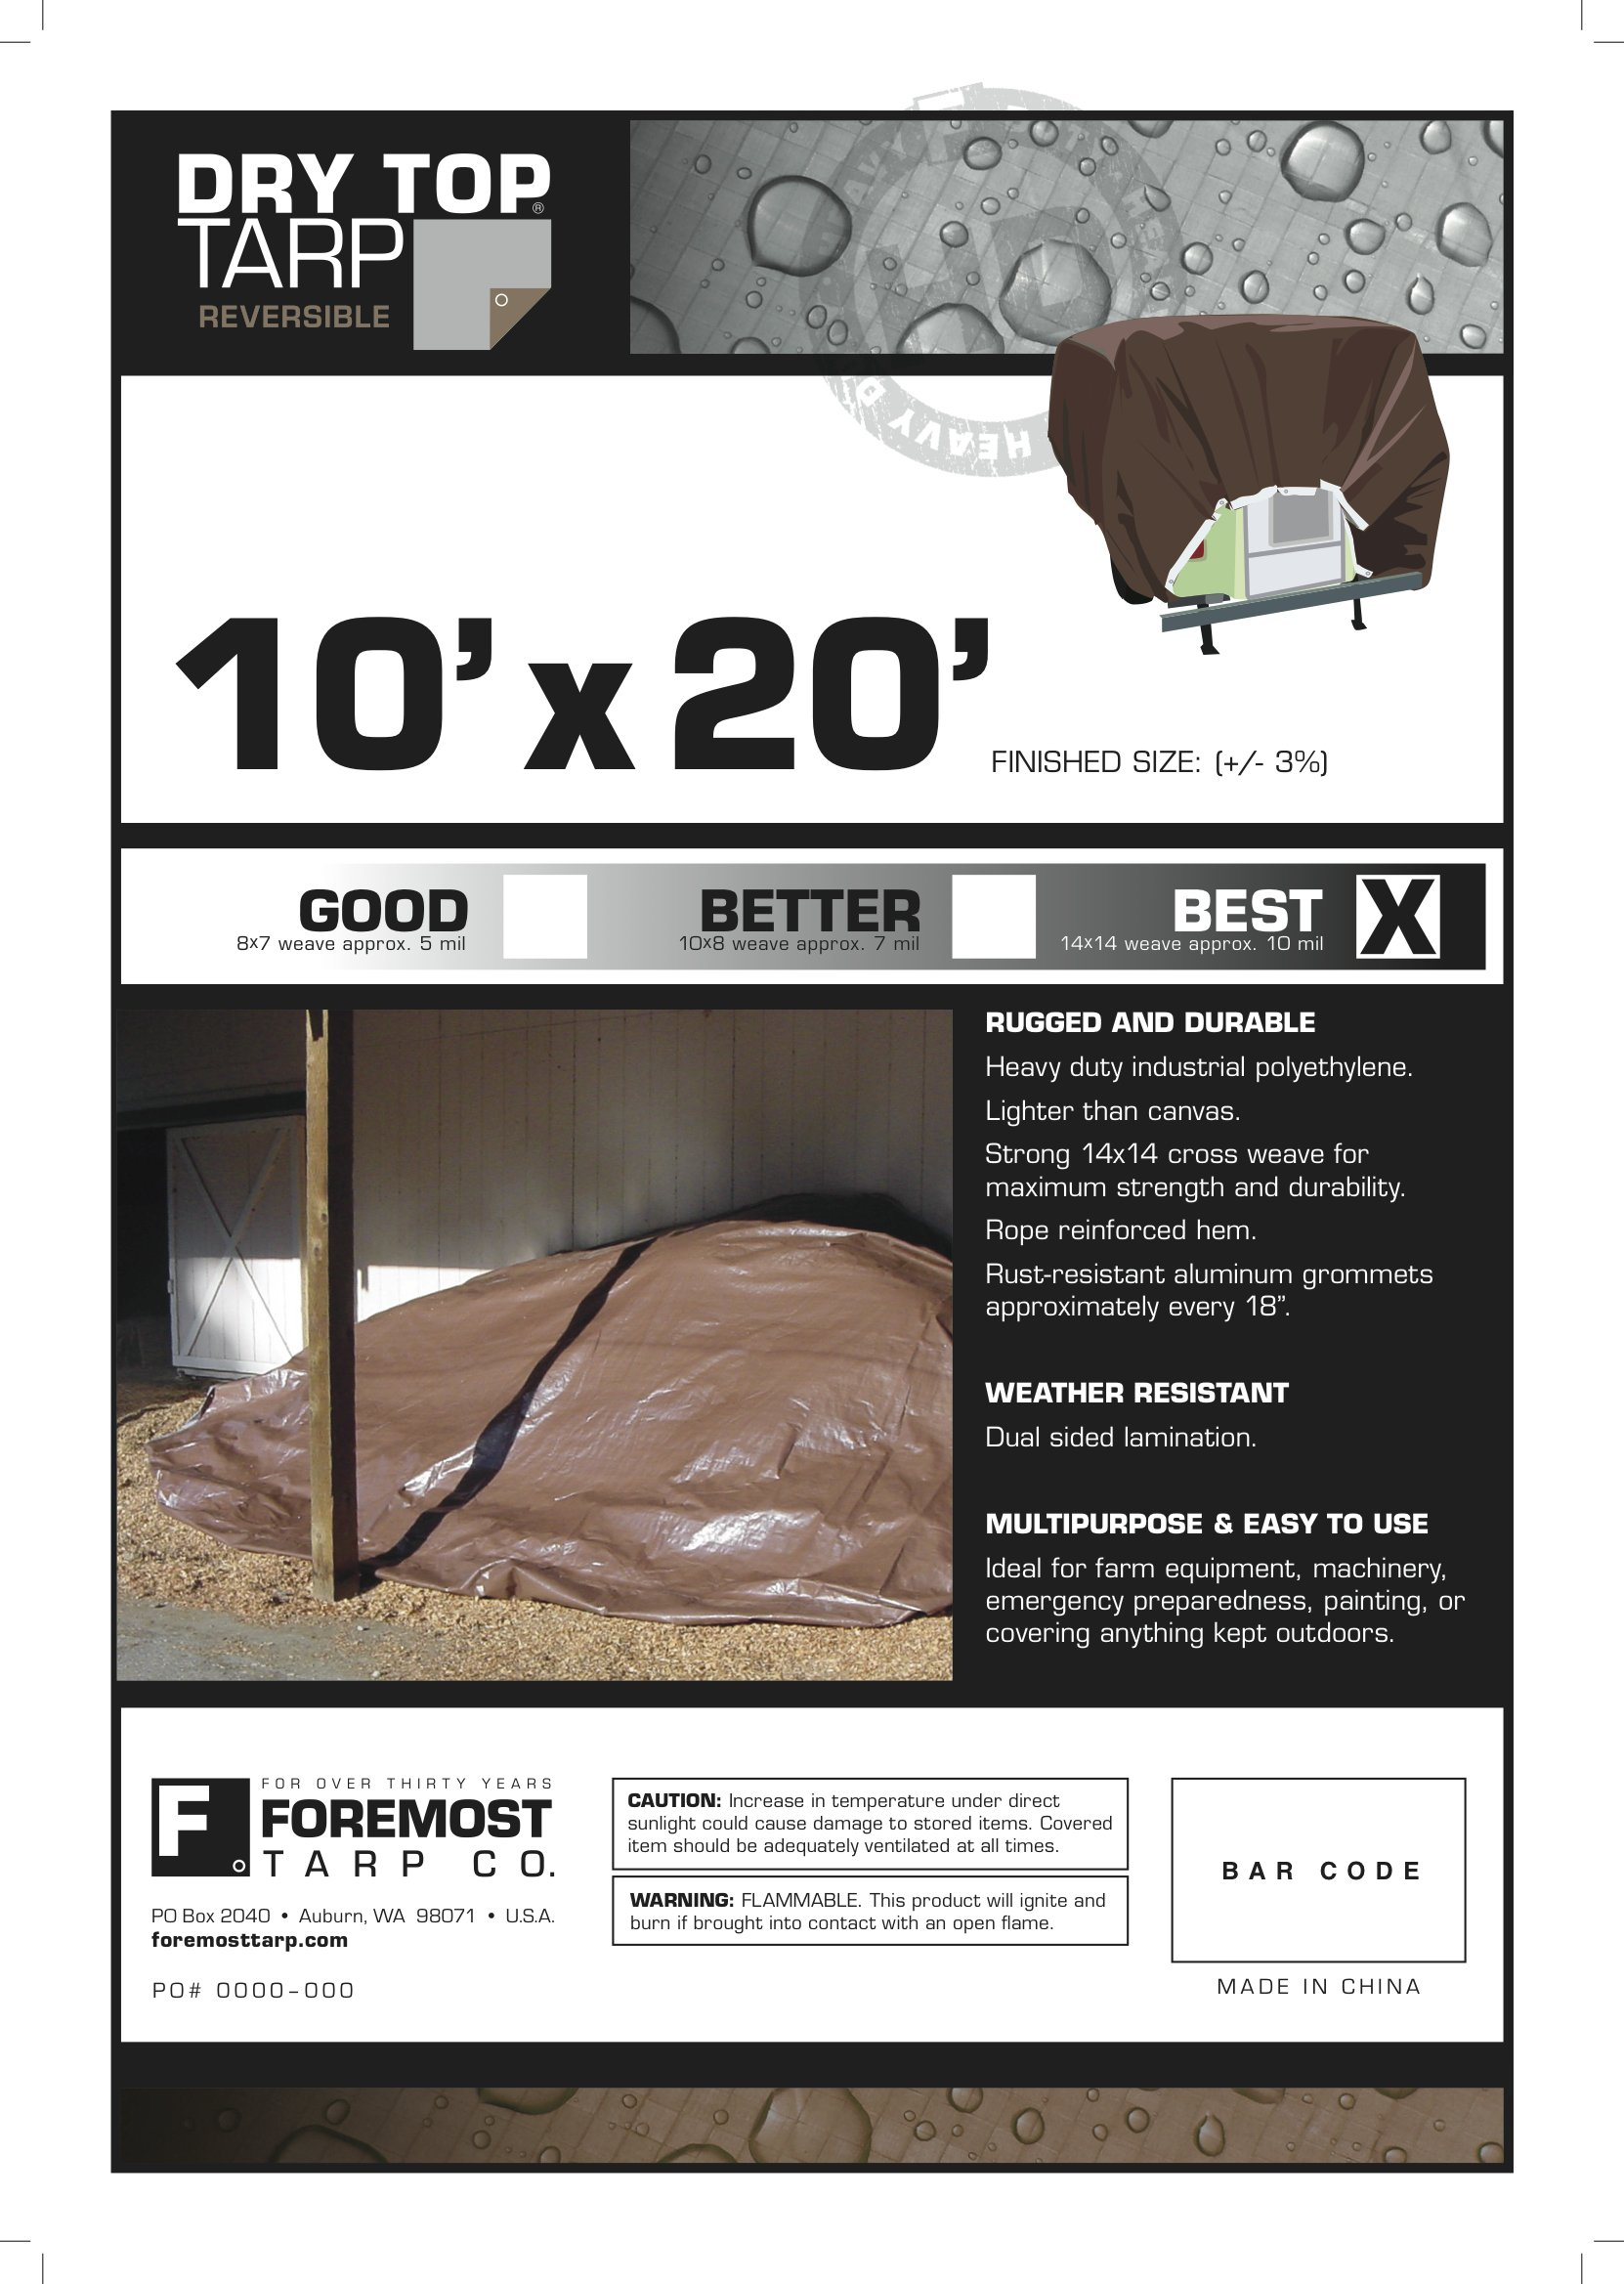 10' x 20' Dry Top Heavy Duty Silver/Brown Reversible Full Size 10-mil Poly Tarp item #210200